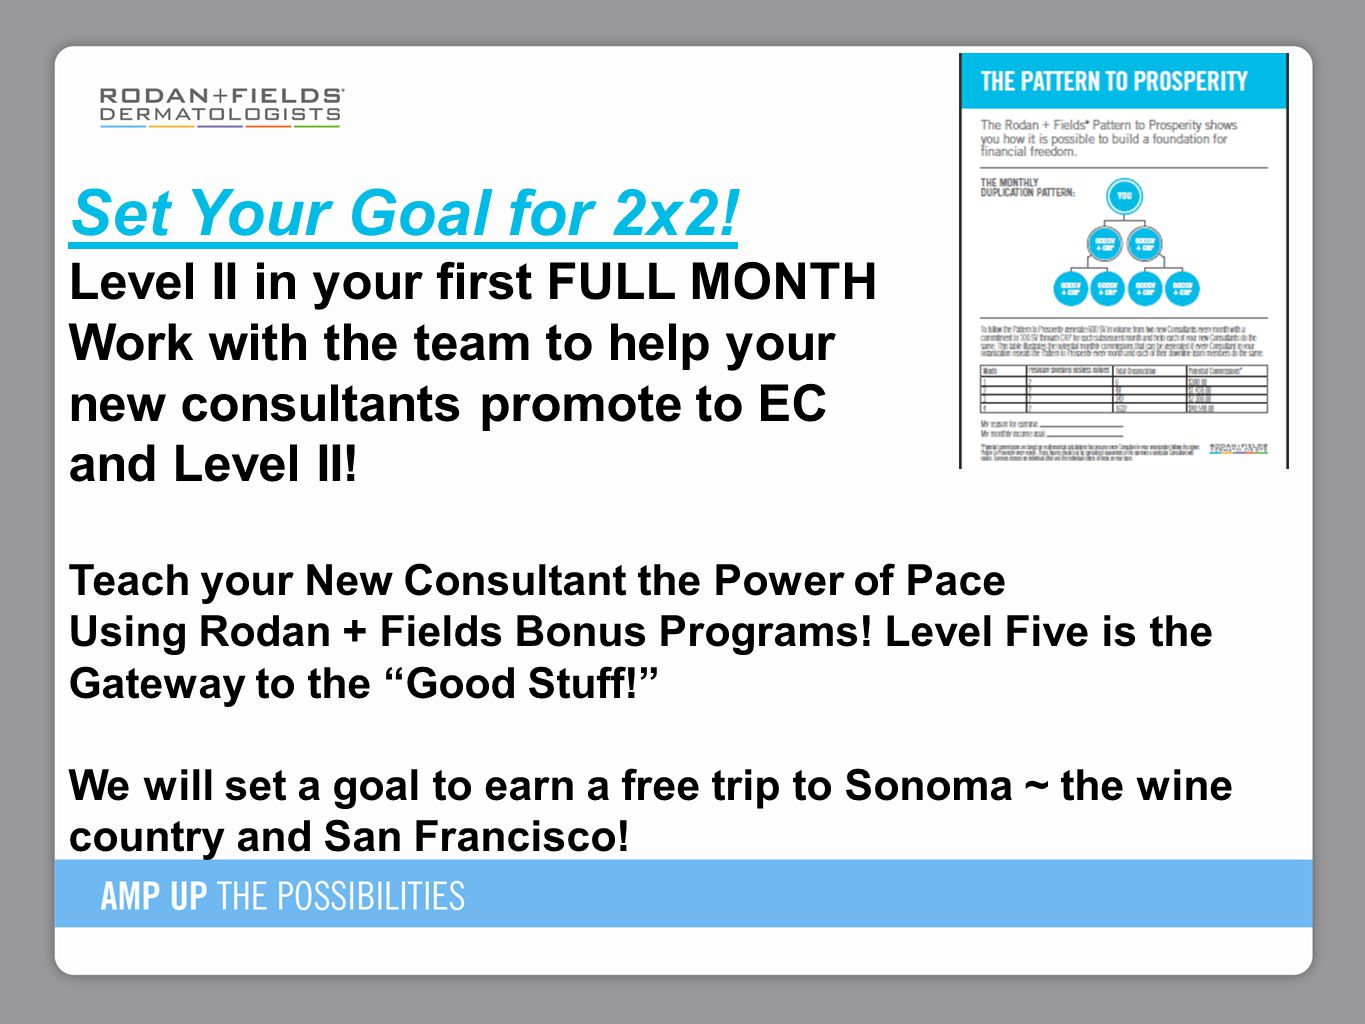 Set Your Goal for 2x2! Level II in your first FULL MONTH